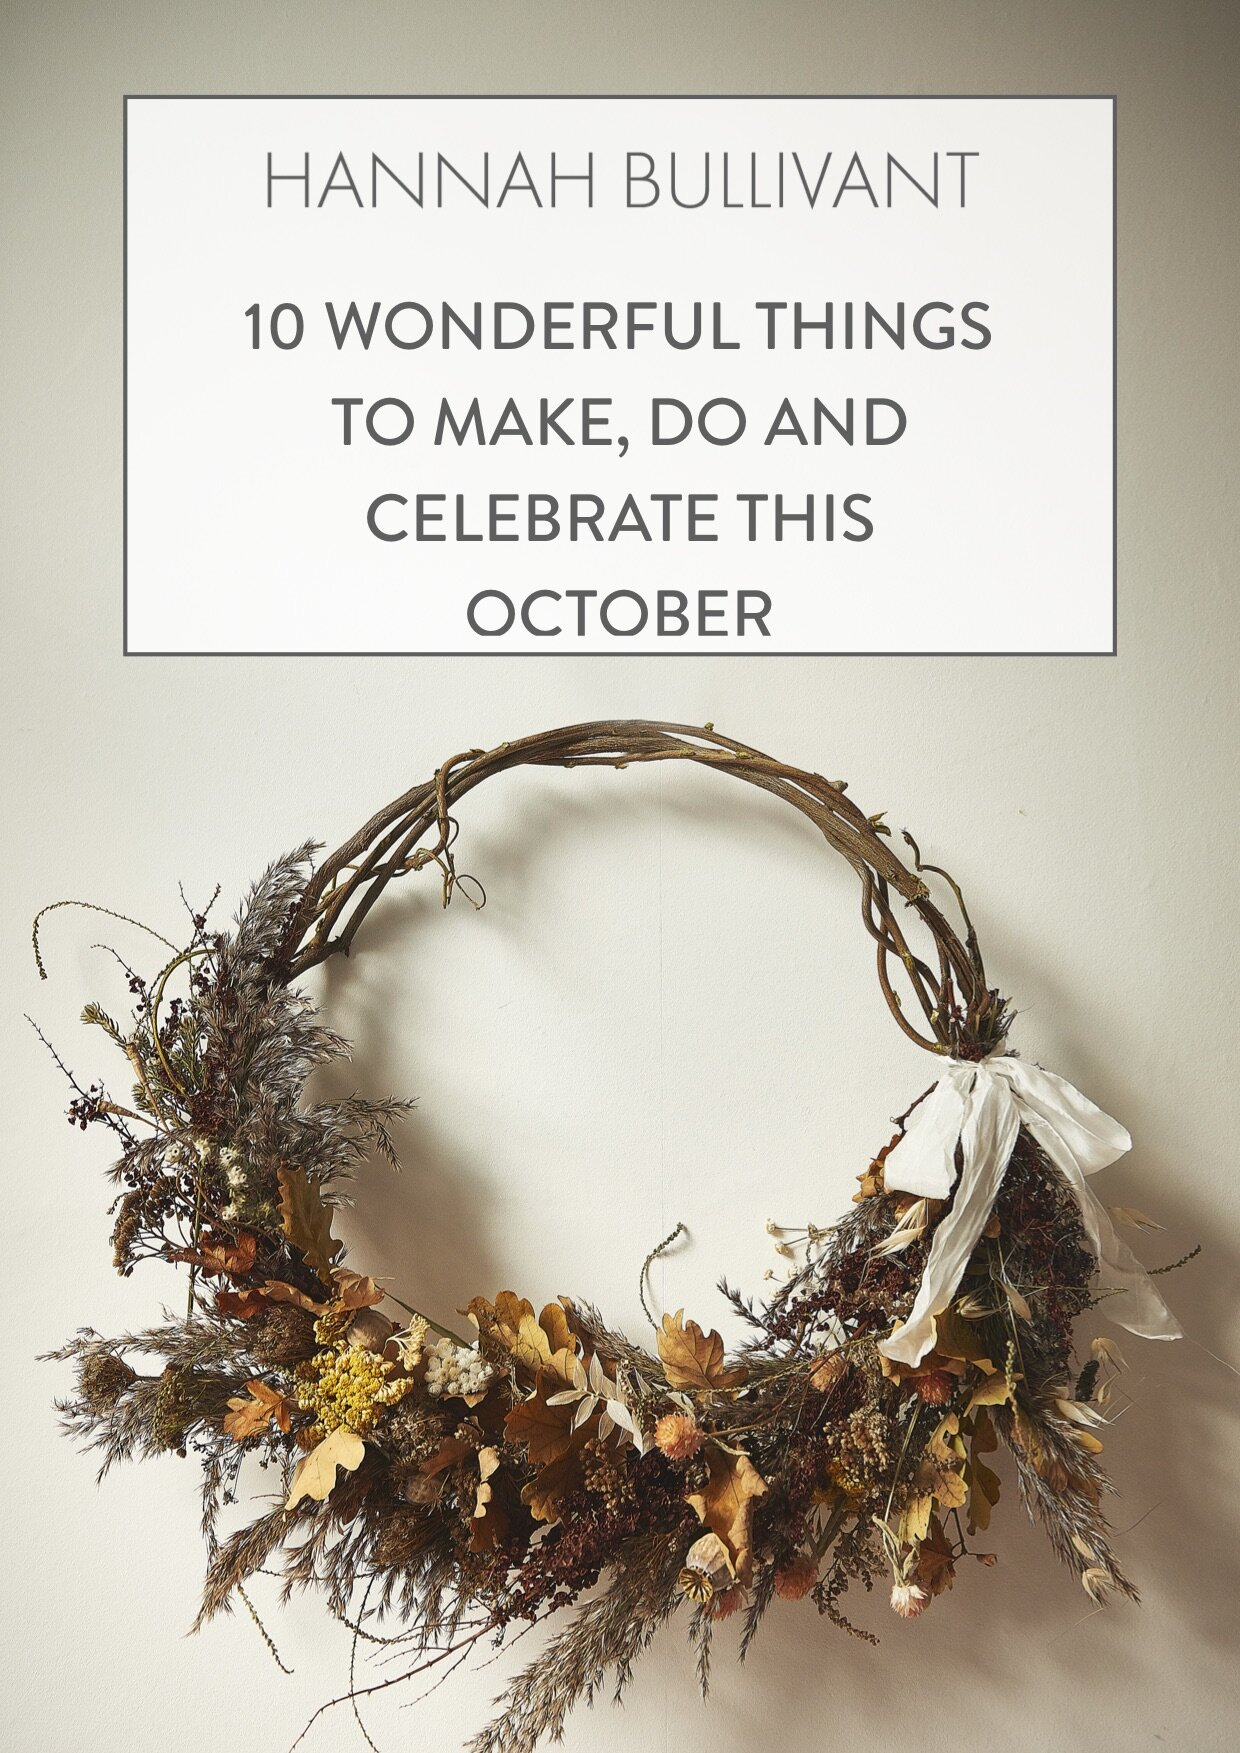 10 wonderful things to make, do and celebrate in October!